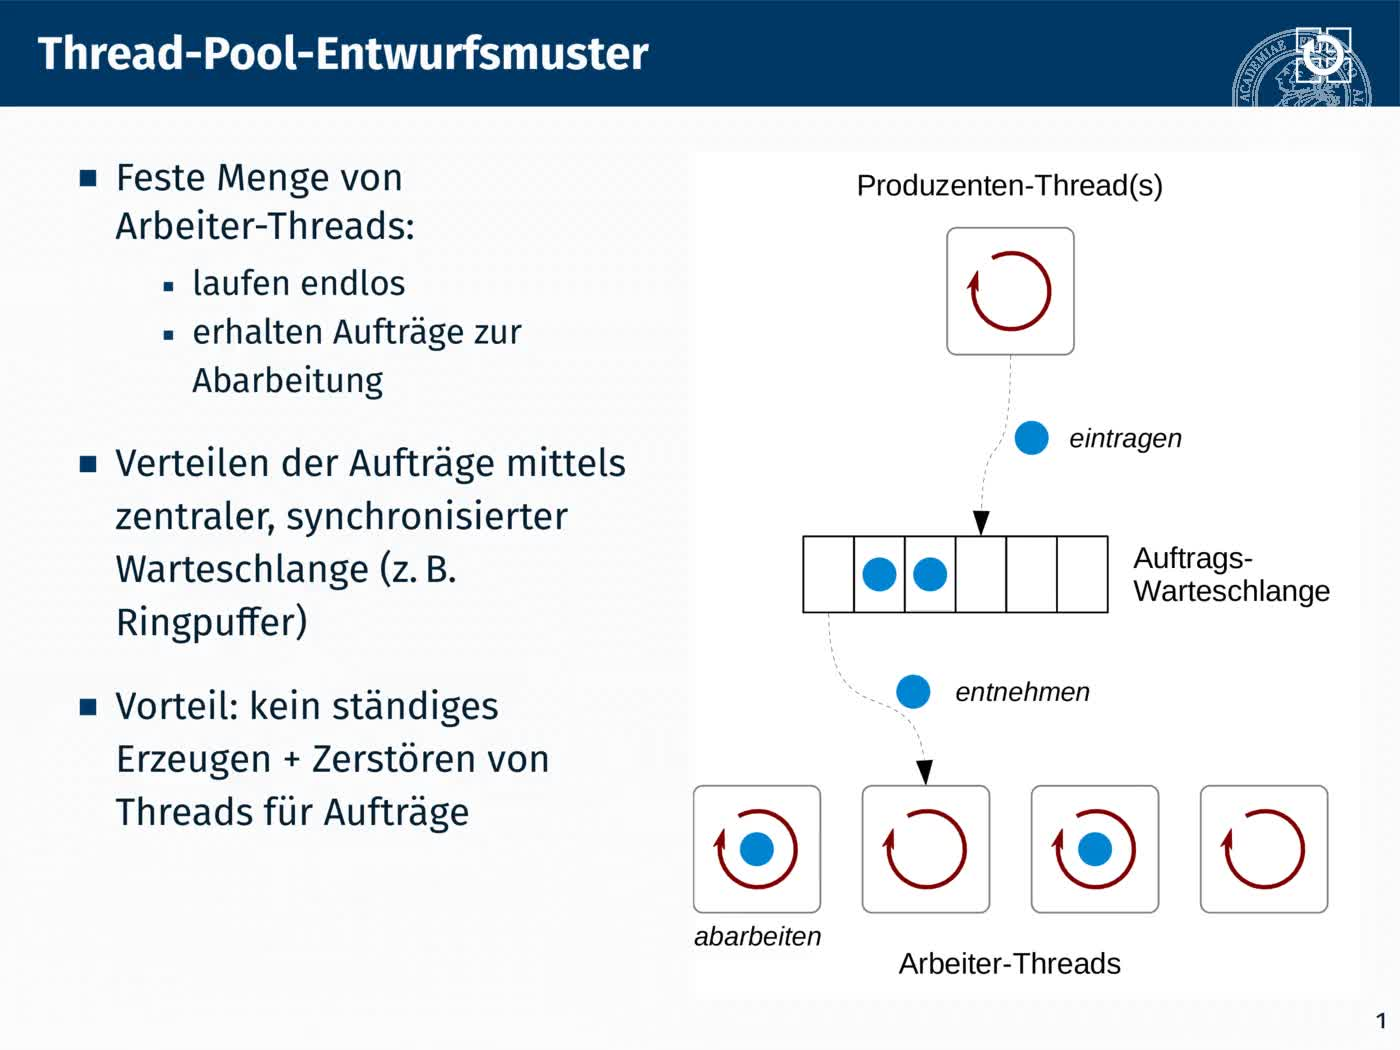 6.1 Mehrfädige Programme: Thread-Pool preview image